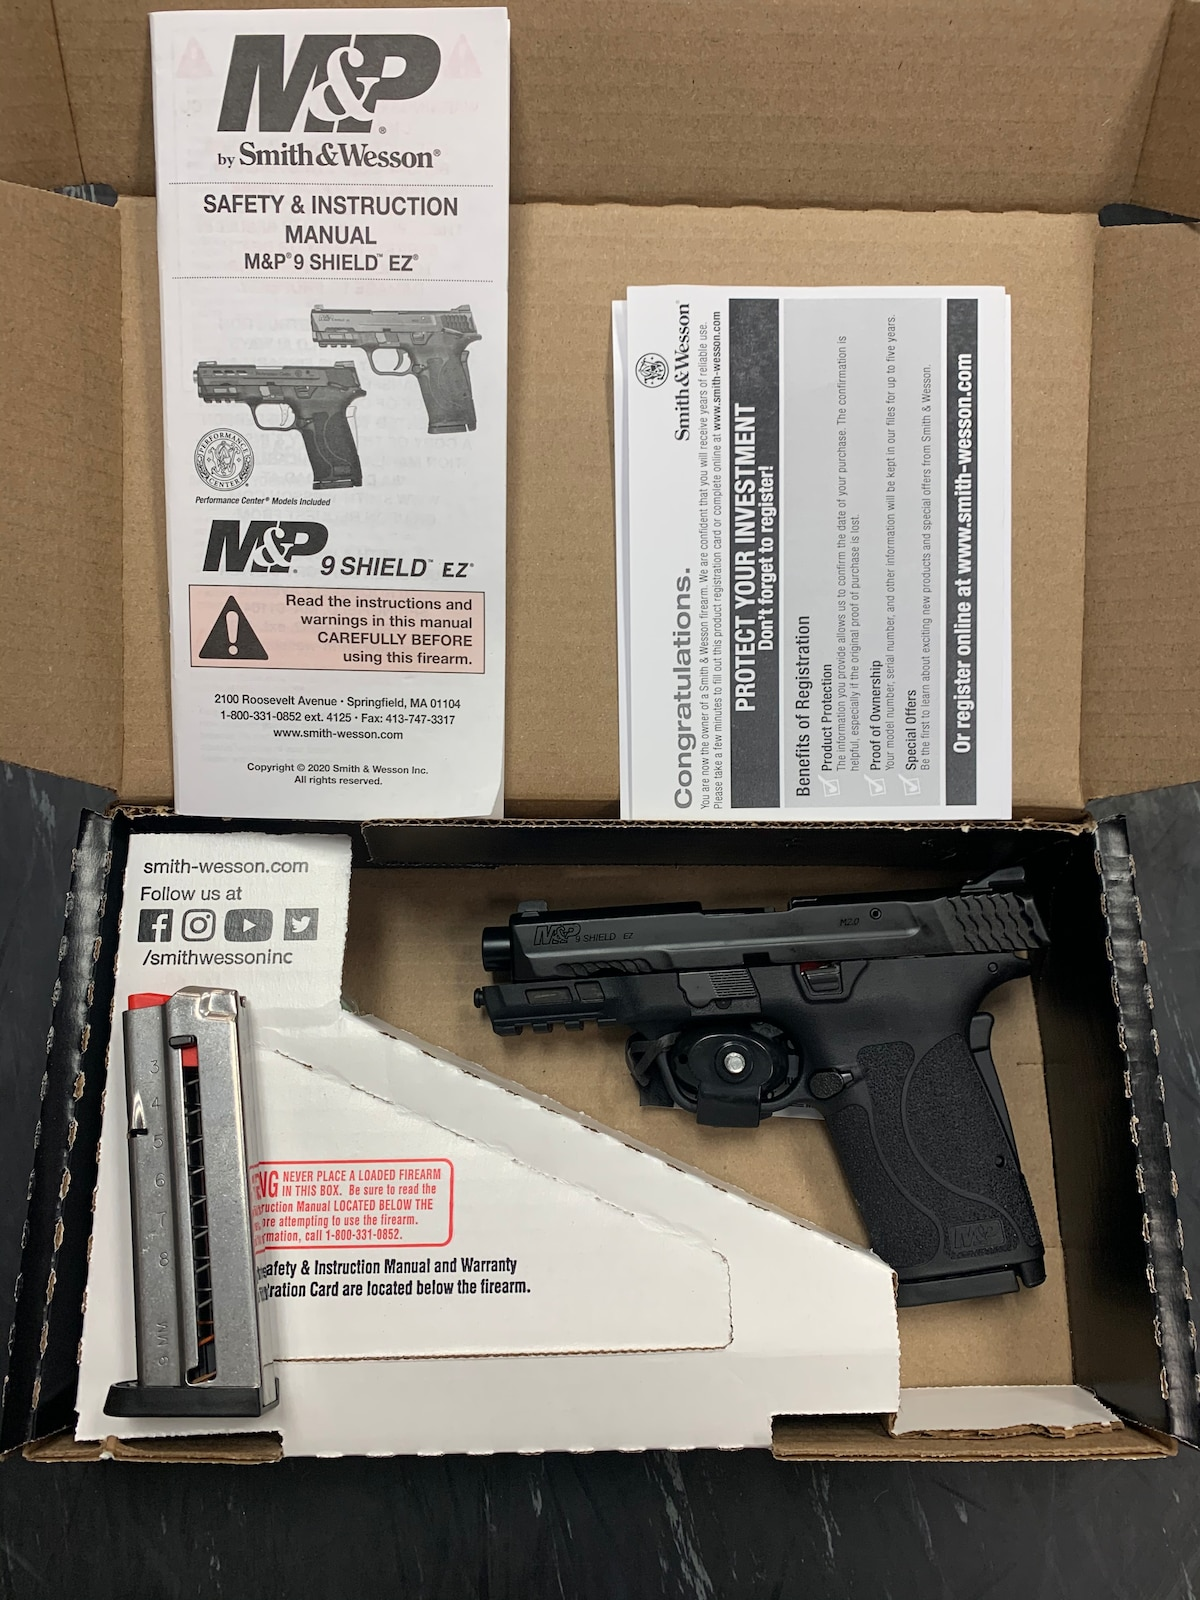 SMITH & WESSON M&P 9 Shield EZ M2.0